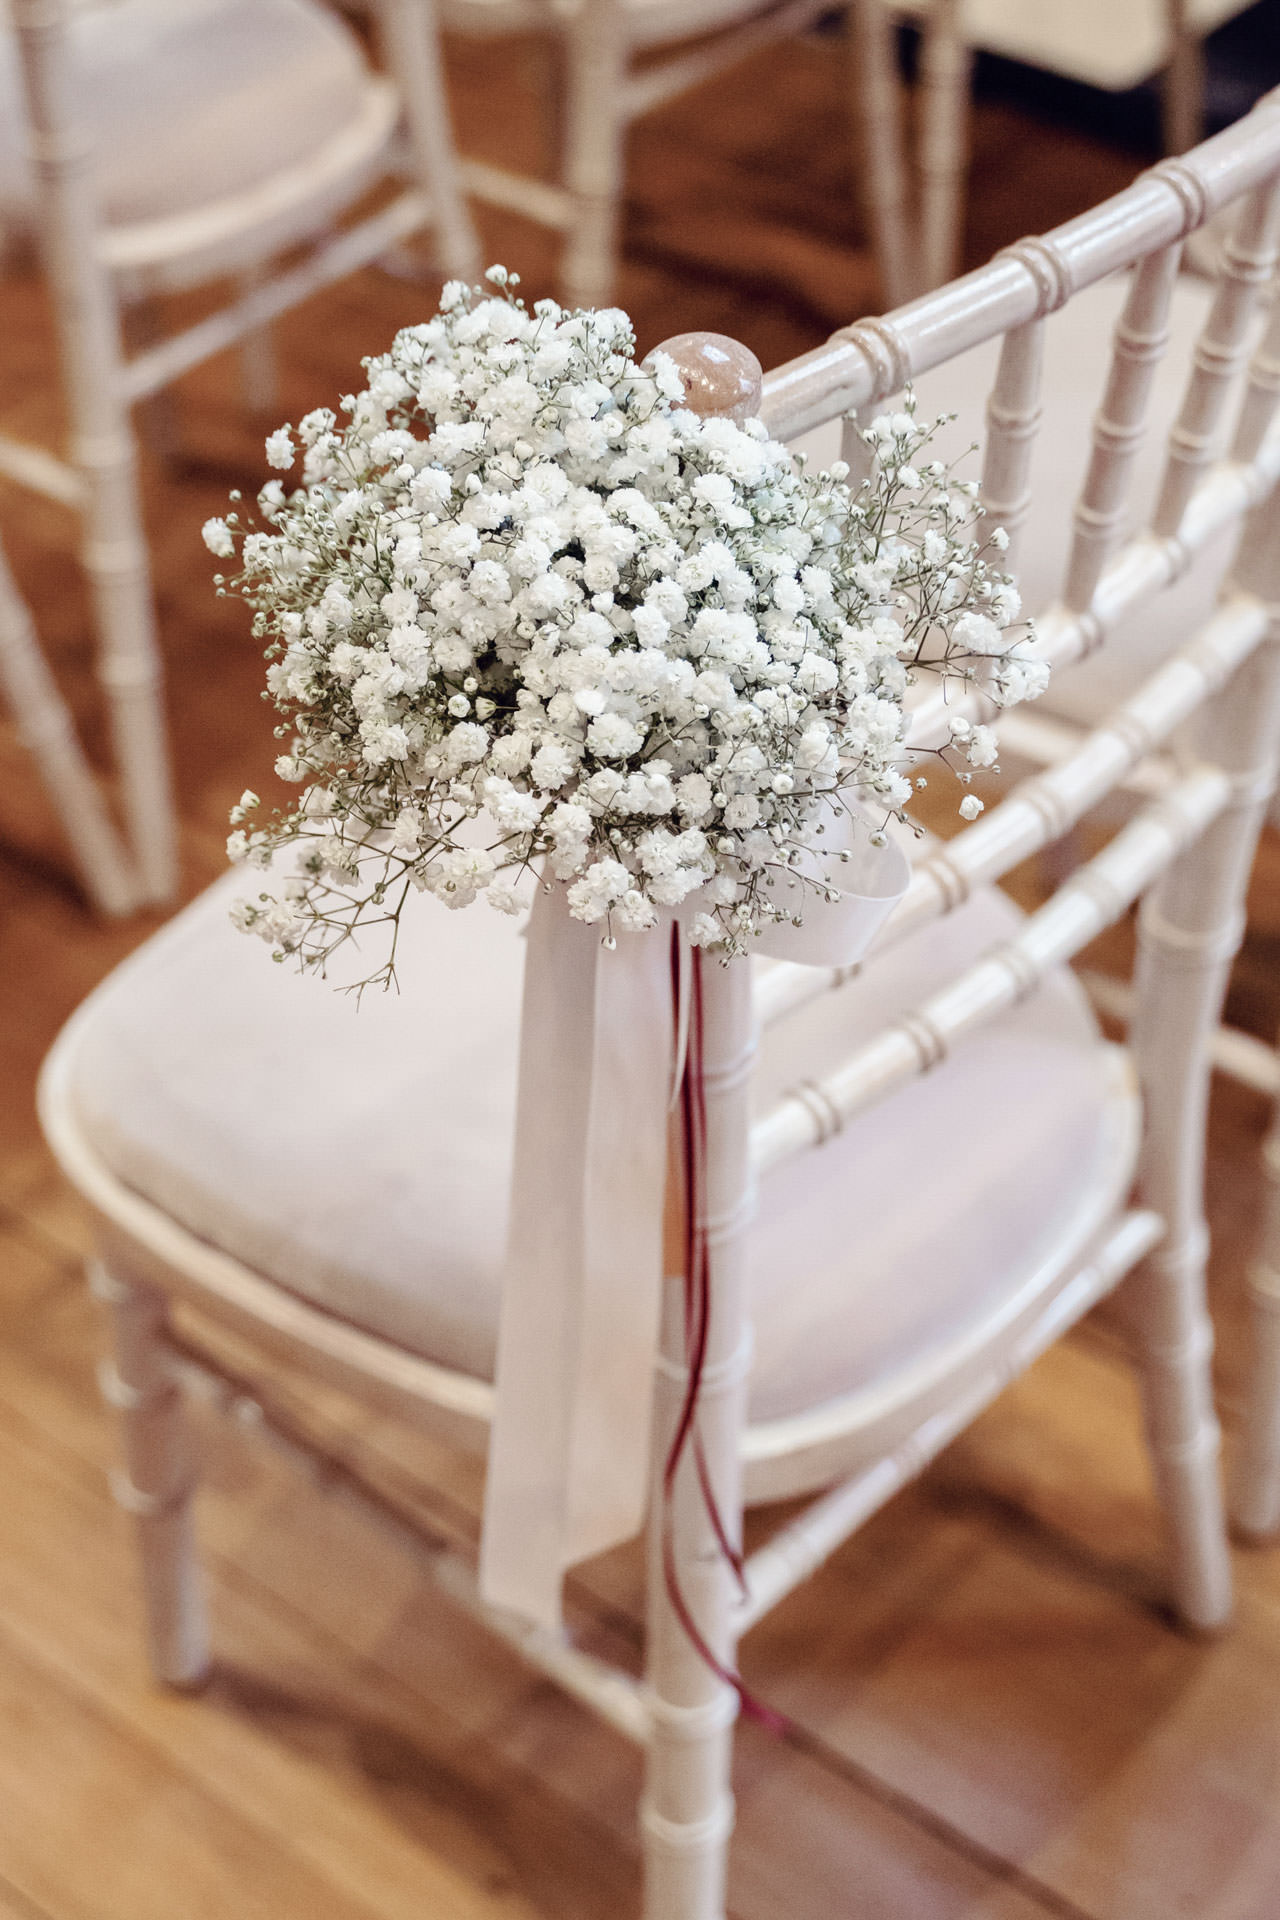 A simple posy of Gypsophila is a great choice to line the aisle.